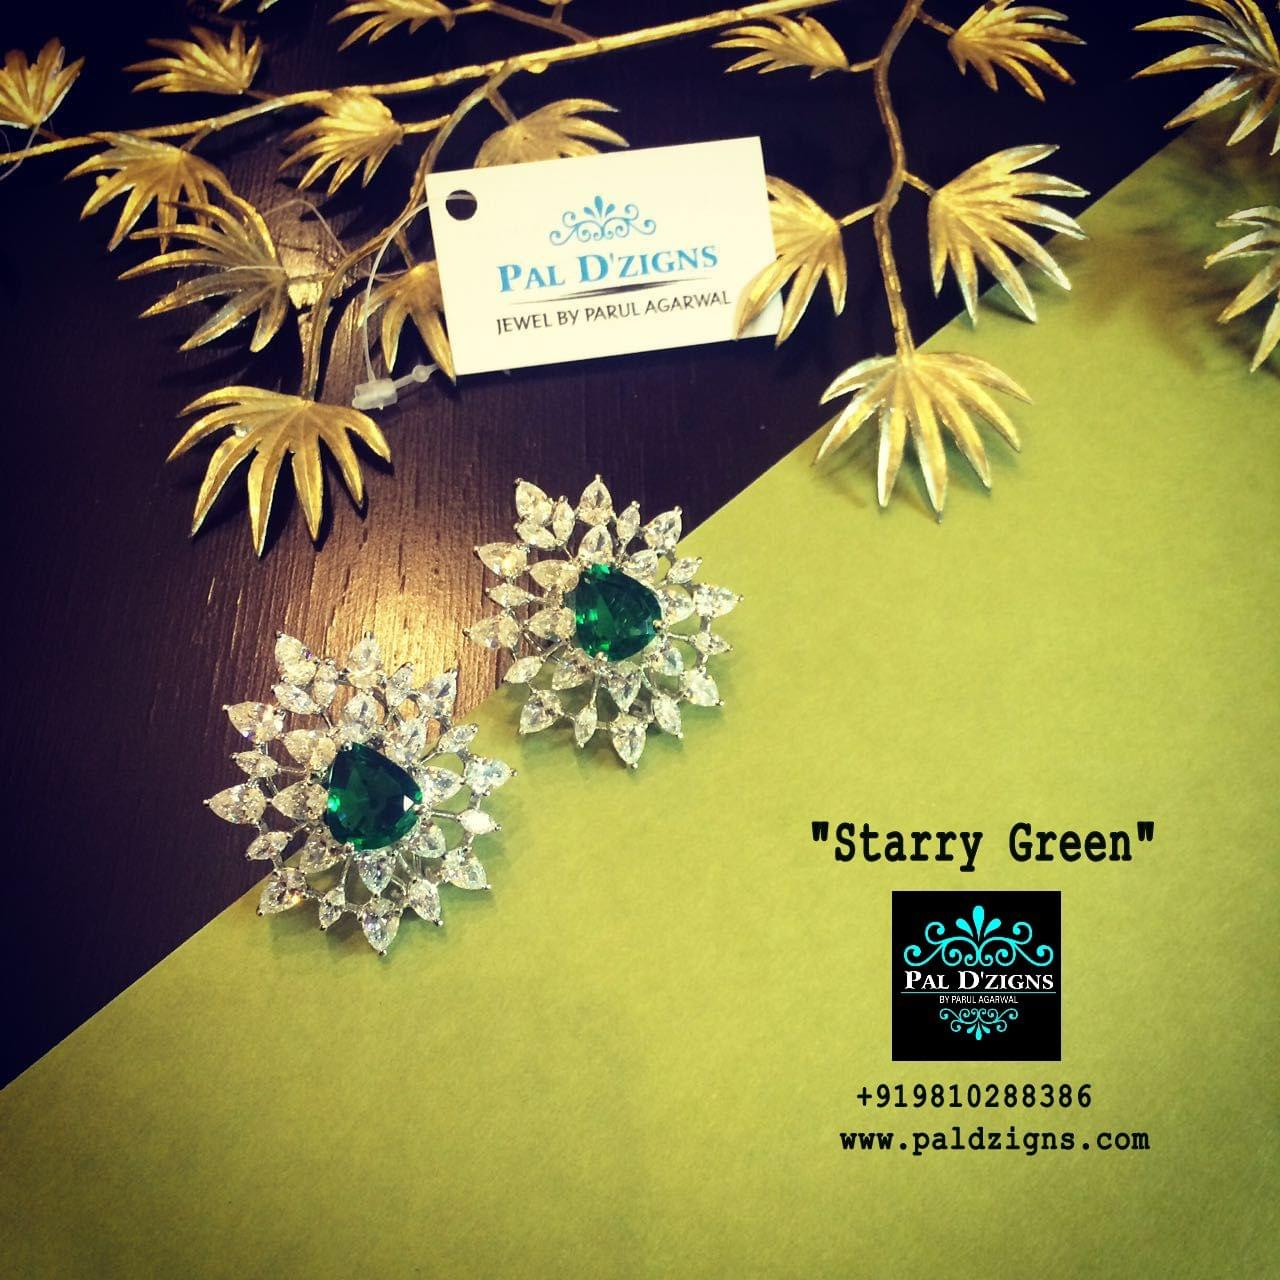 Starry Green Diamond earring